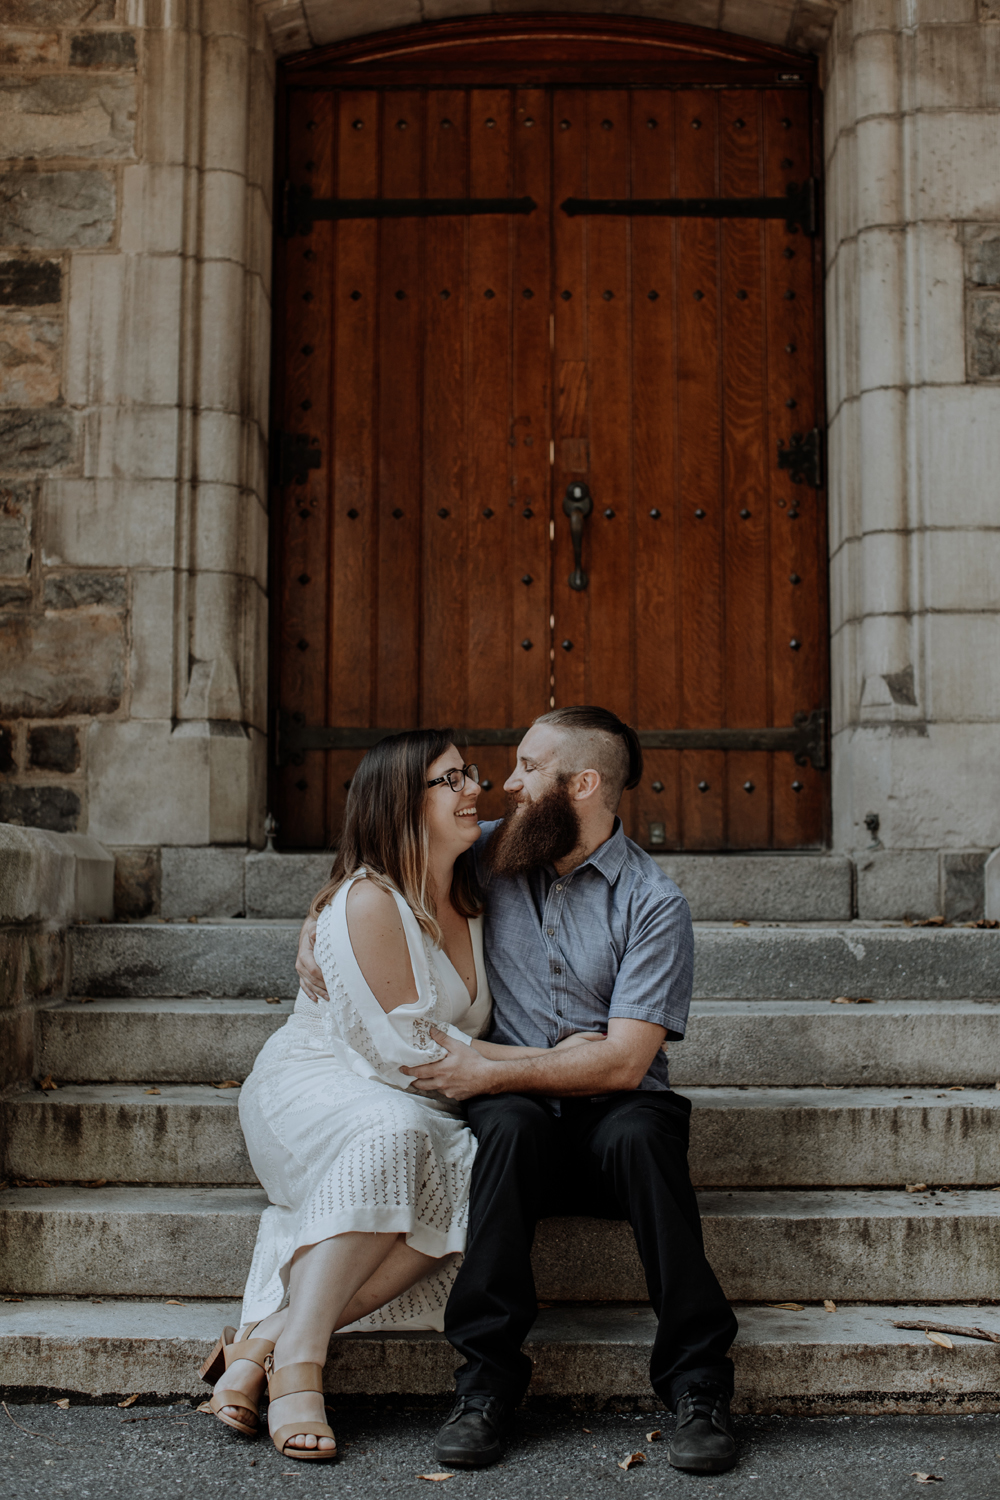 lehigh-university-alumni-memorial-building-engagement-photography